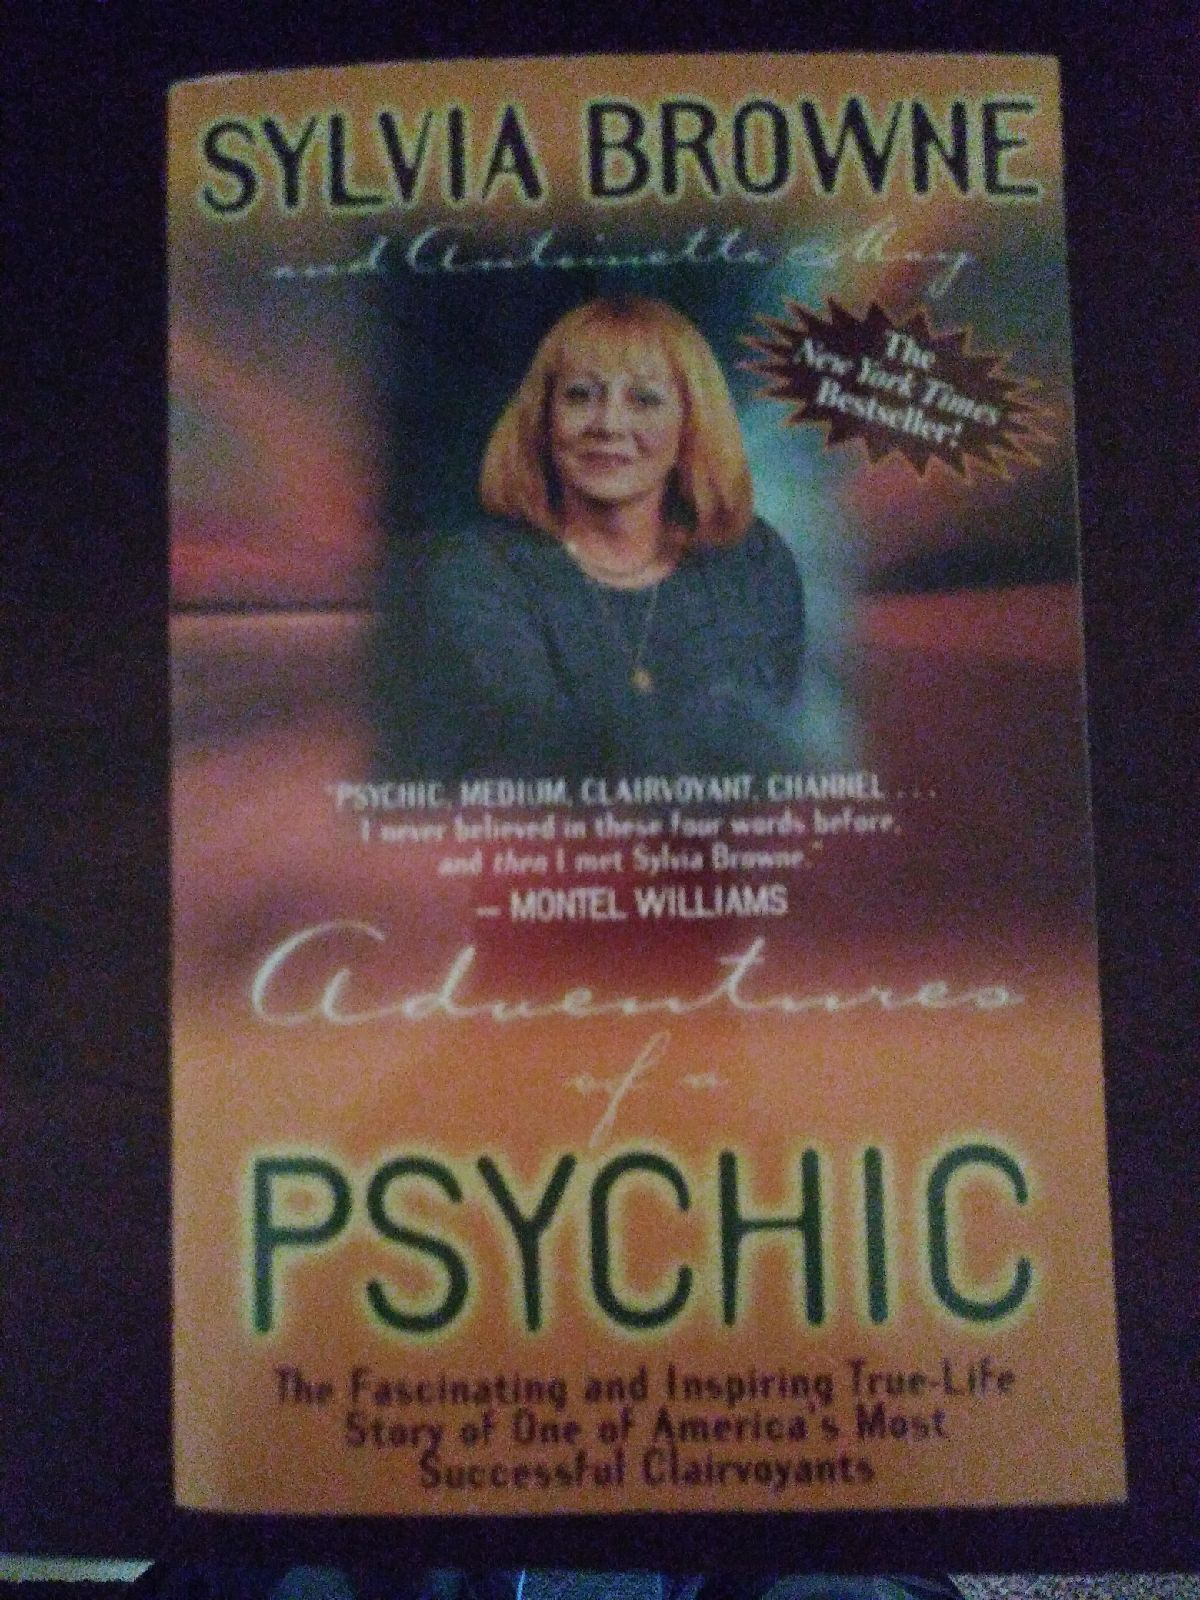 The adventures of a Psychic